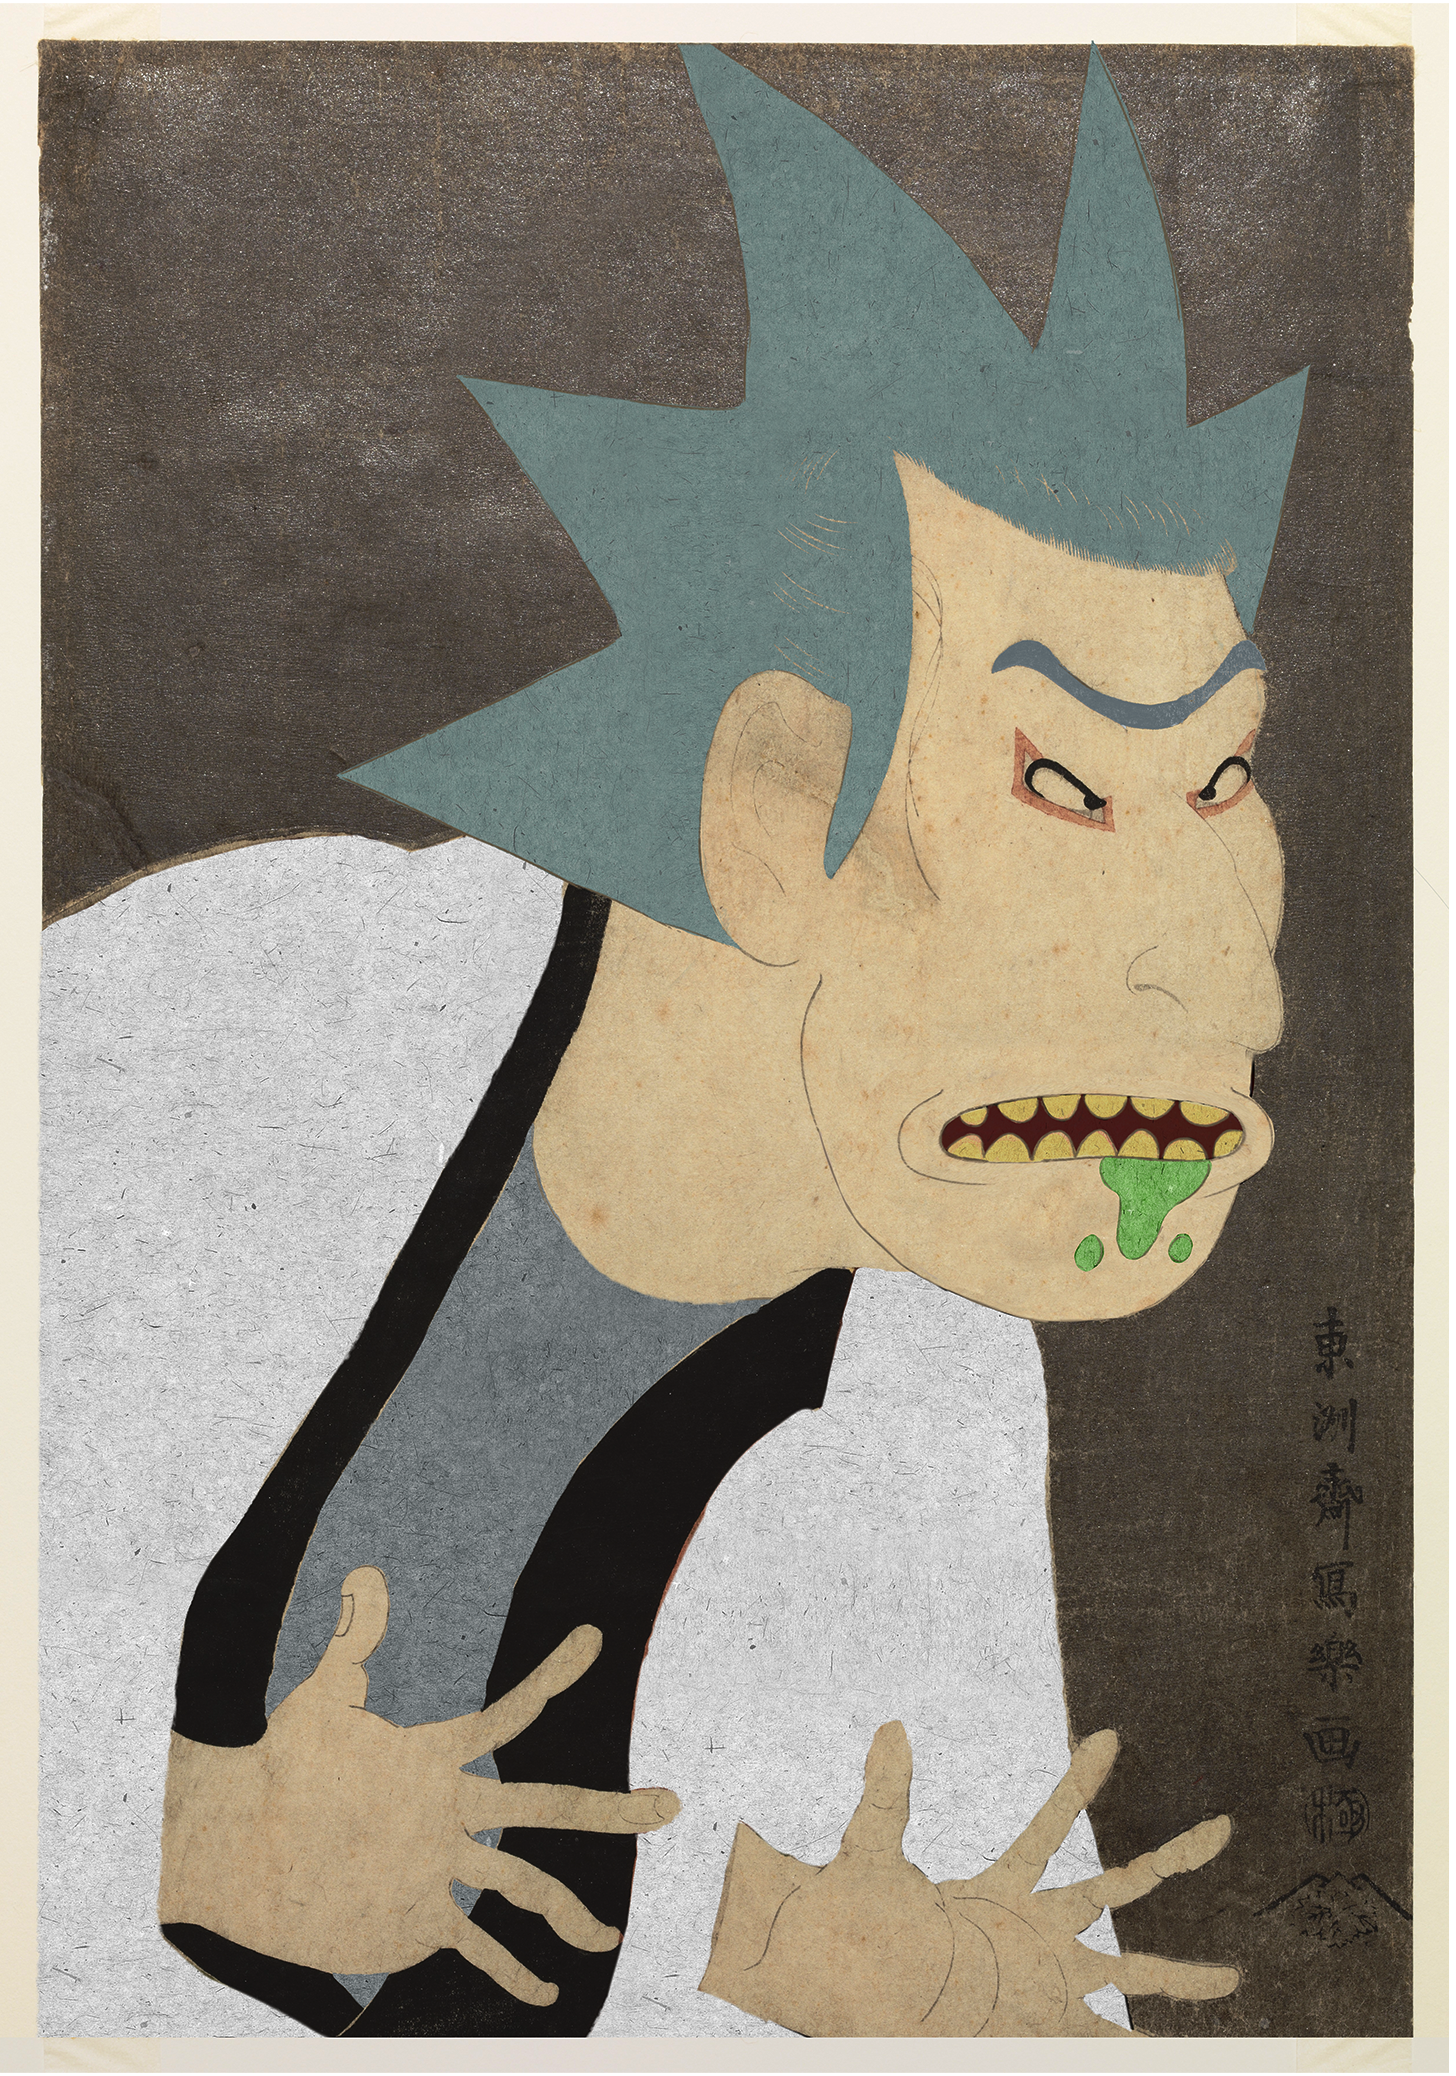 Rick From Rick And Morty Cartoon In Antique Japanese Style Funny Print For T Shirt And Any Goods Phone Cases Laptop Cas In 2020 With Images Funny Prints Japanese Rick And Morty